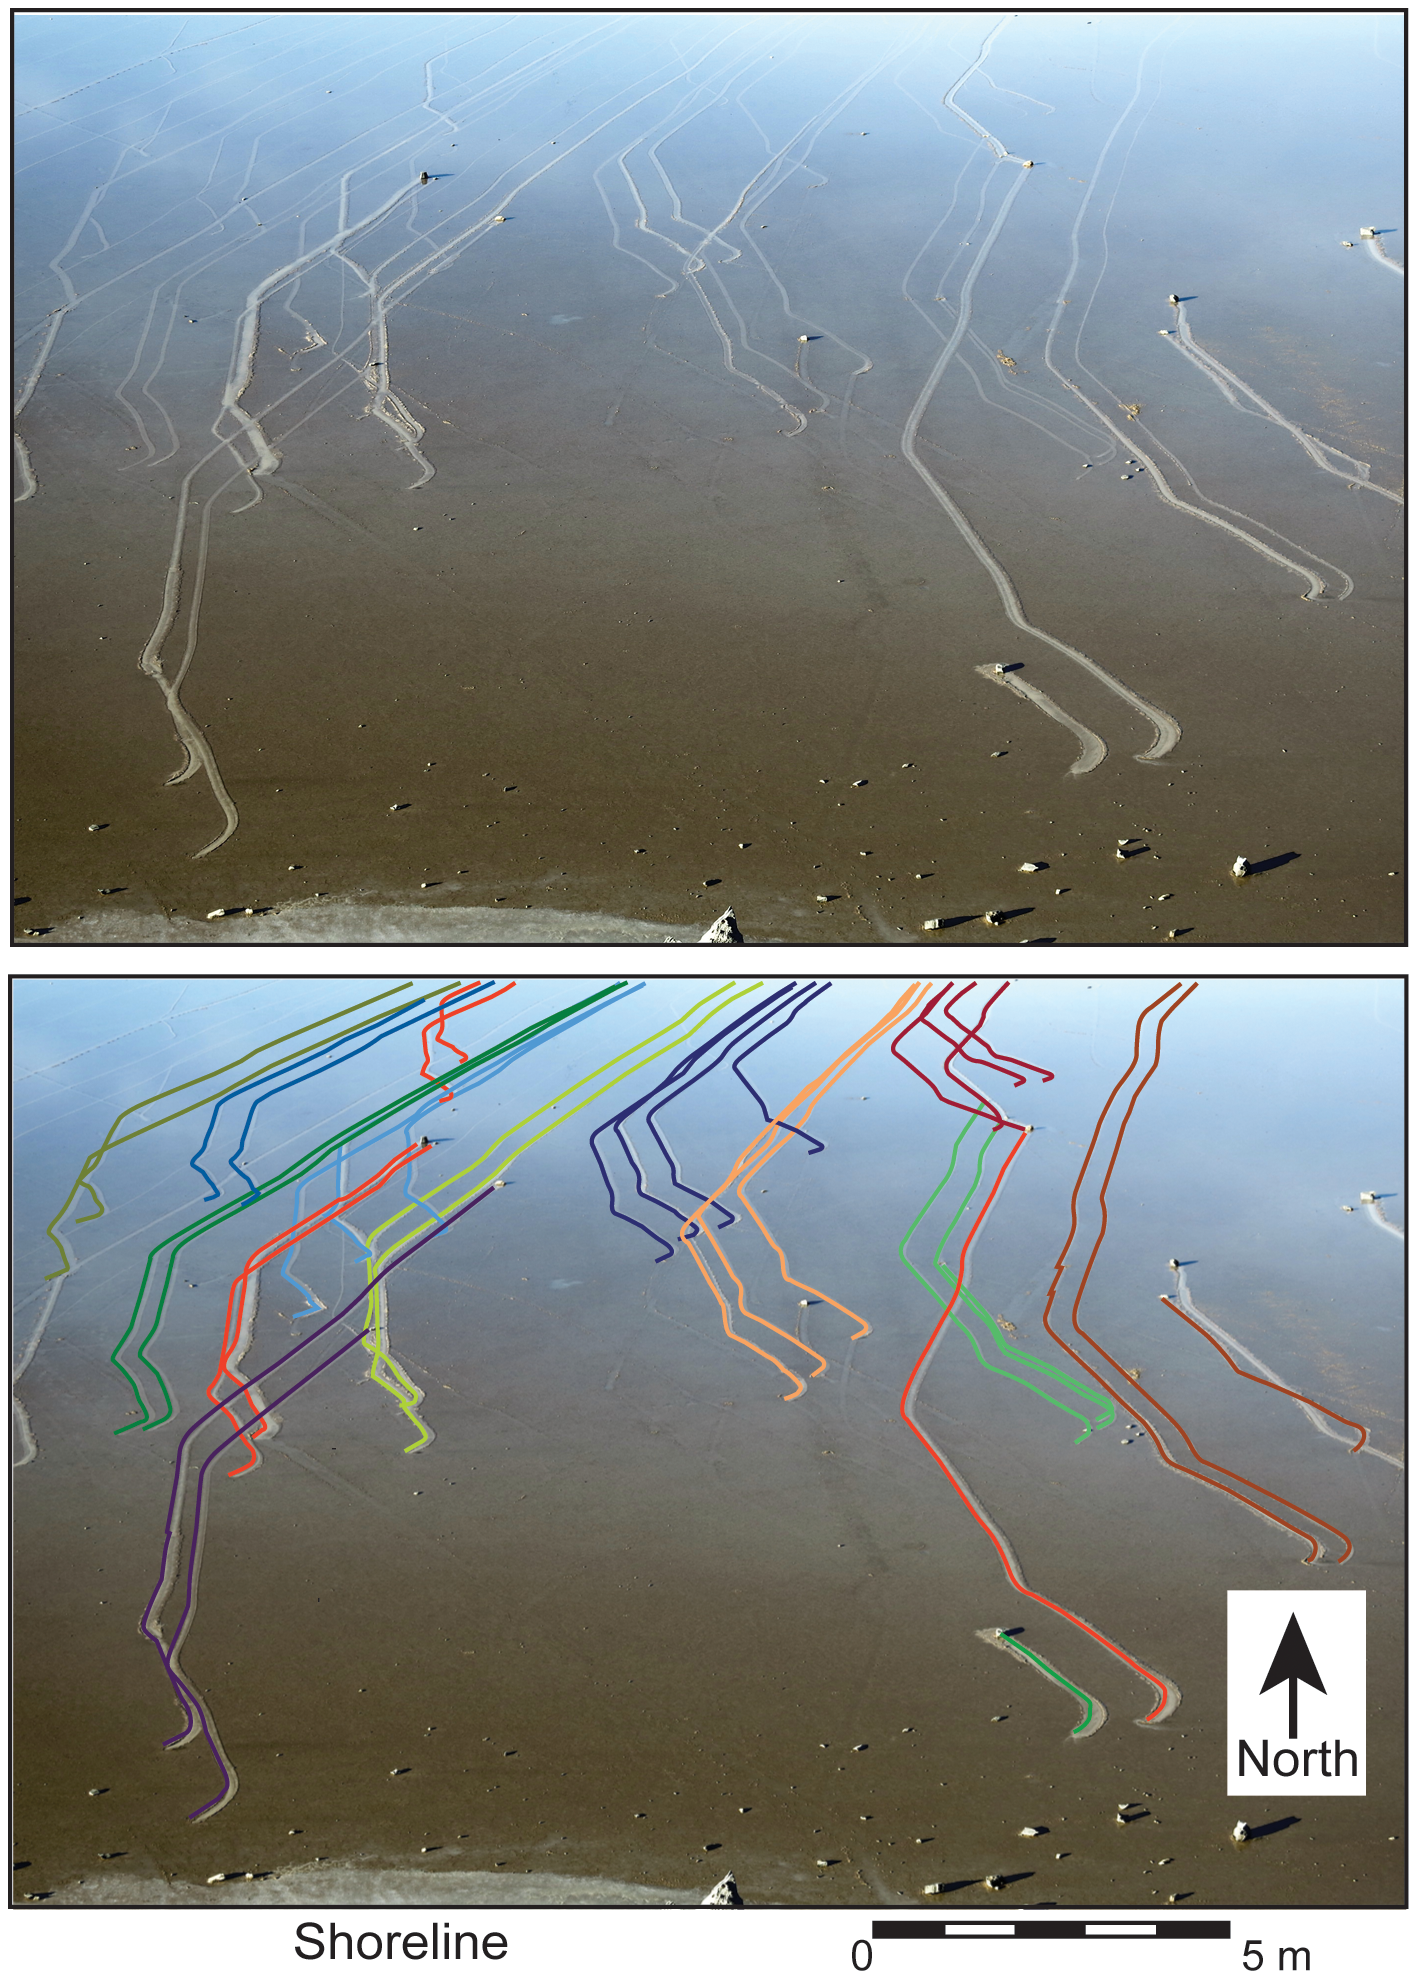 Rock trails on the Racetrack Playa. Source: Figure 2, Sliding Rocks on Racetrack Playa, Death Valley National Park: First Observation of Rocks in Motion. doi:10.1371/journal.pone.0105948.g002